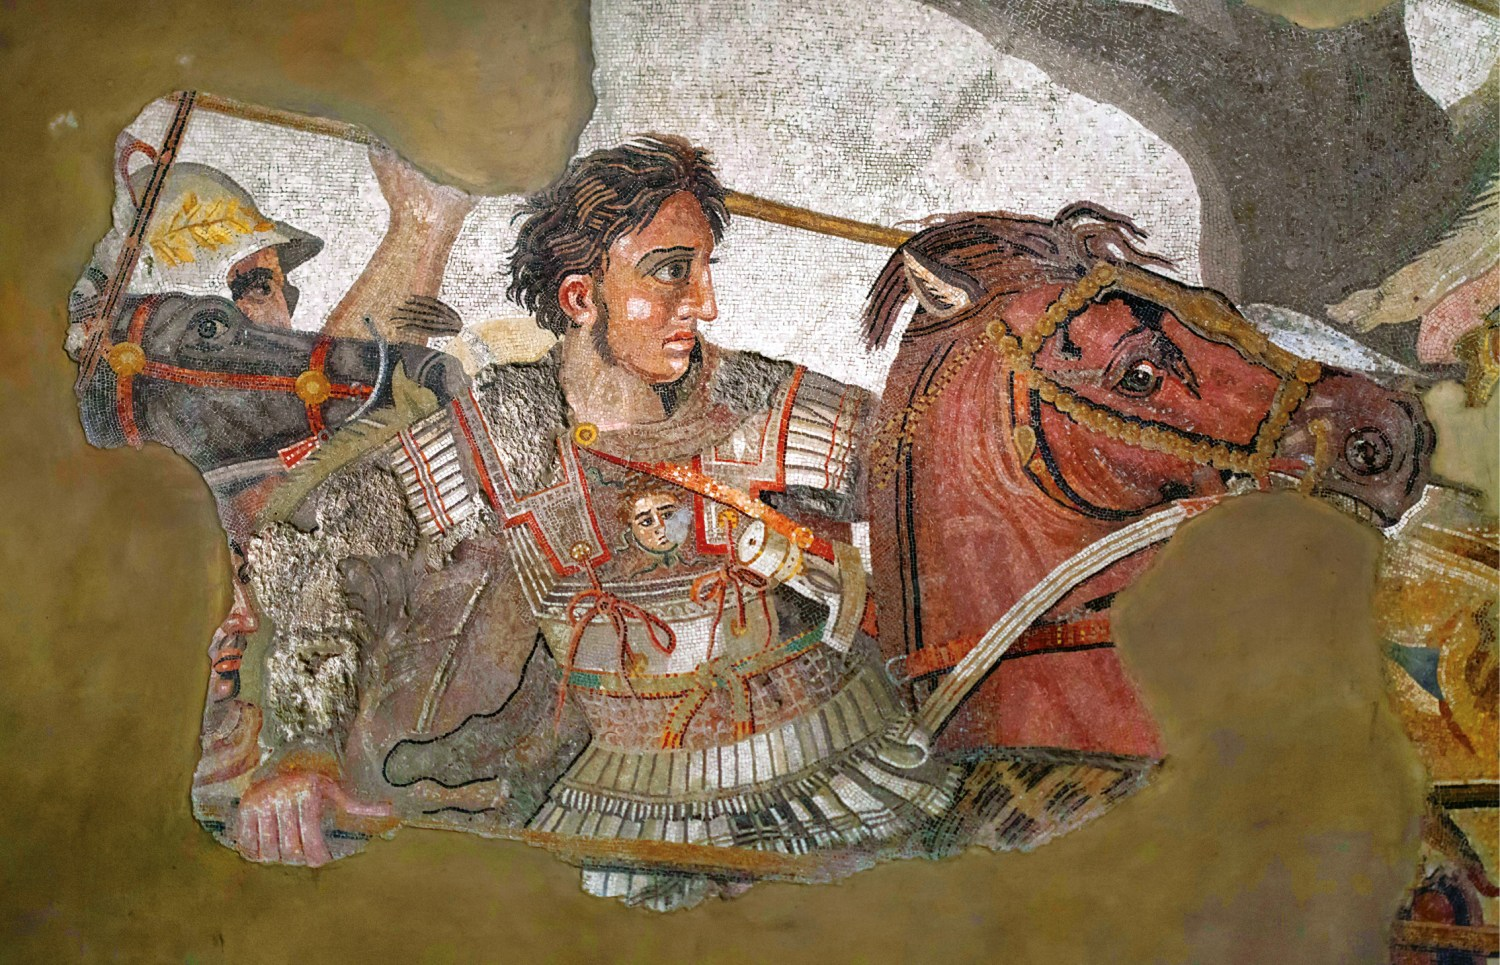 above Portrait of Alexander on the Alexander Mosaic from the House of the Faun at Pompeii. The youthful, clean-cut features, the brushed-back wavy hair, the large eyes, fleshy lips, and bridgeless nose were characteristic of all later portraits of the Macedonian king, who became a role-model for later Hellenistic and Roman rulers.